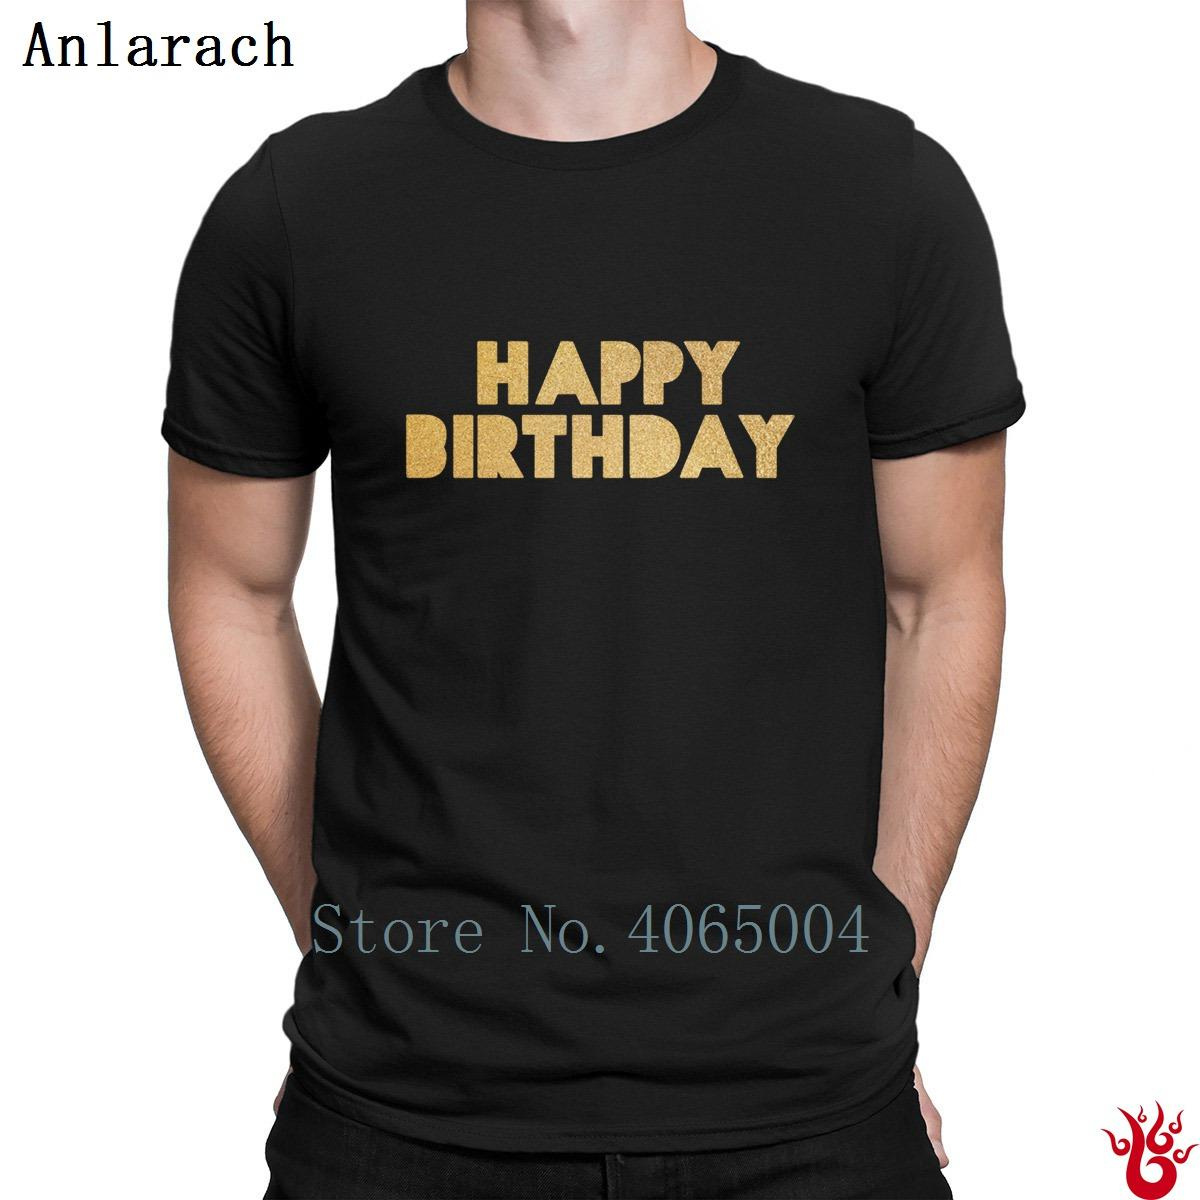 Happy Birthday Tshirts Trend Short Sleeve Character Pop Top Tee T Shirt For Men 2018 Fit Building Crew Neck Novelty Printed Shirts Design From